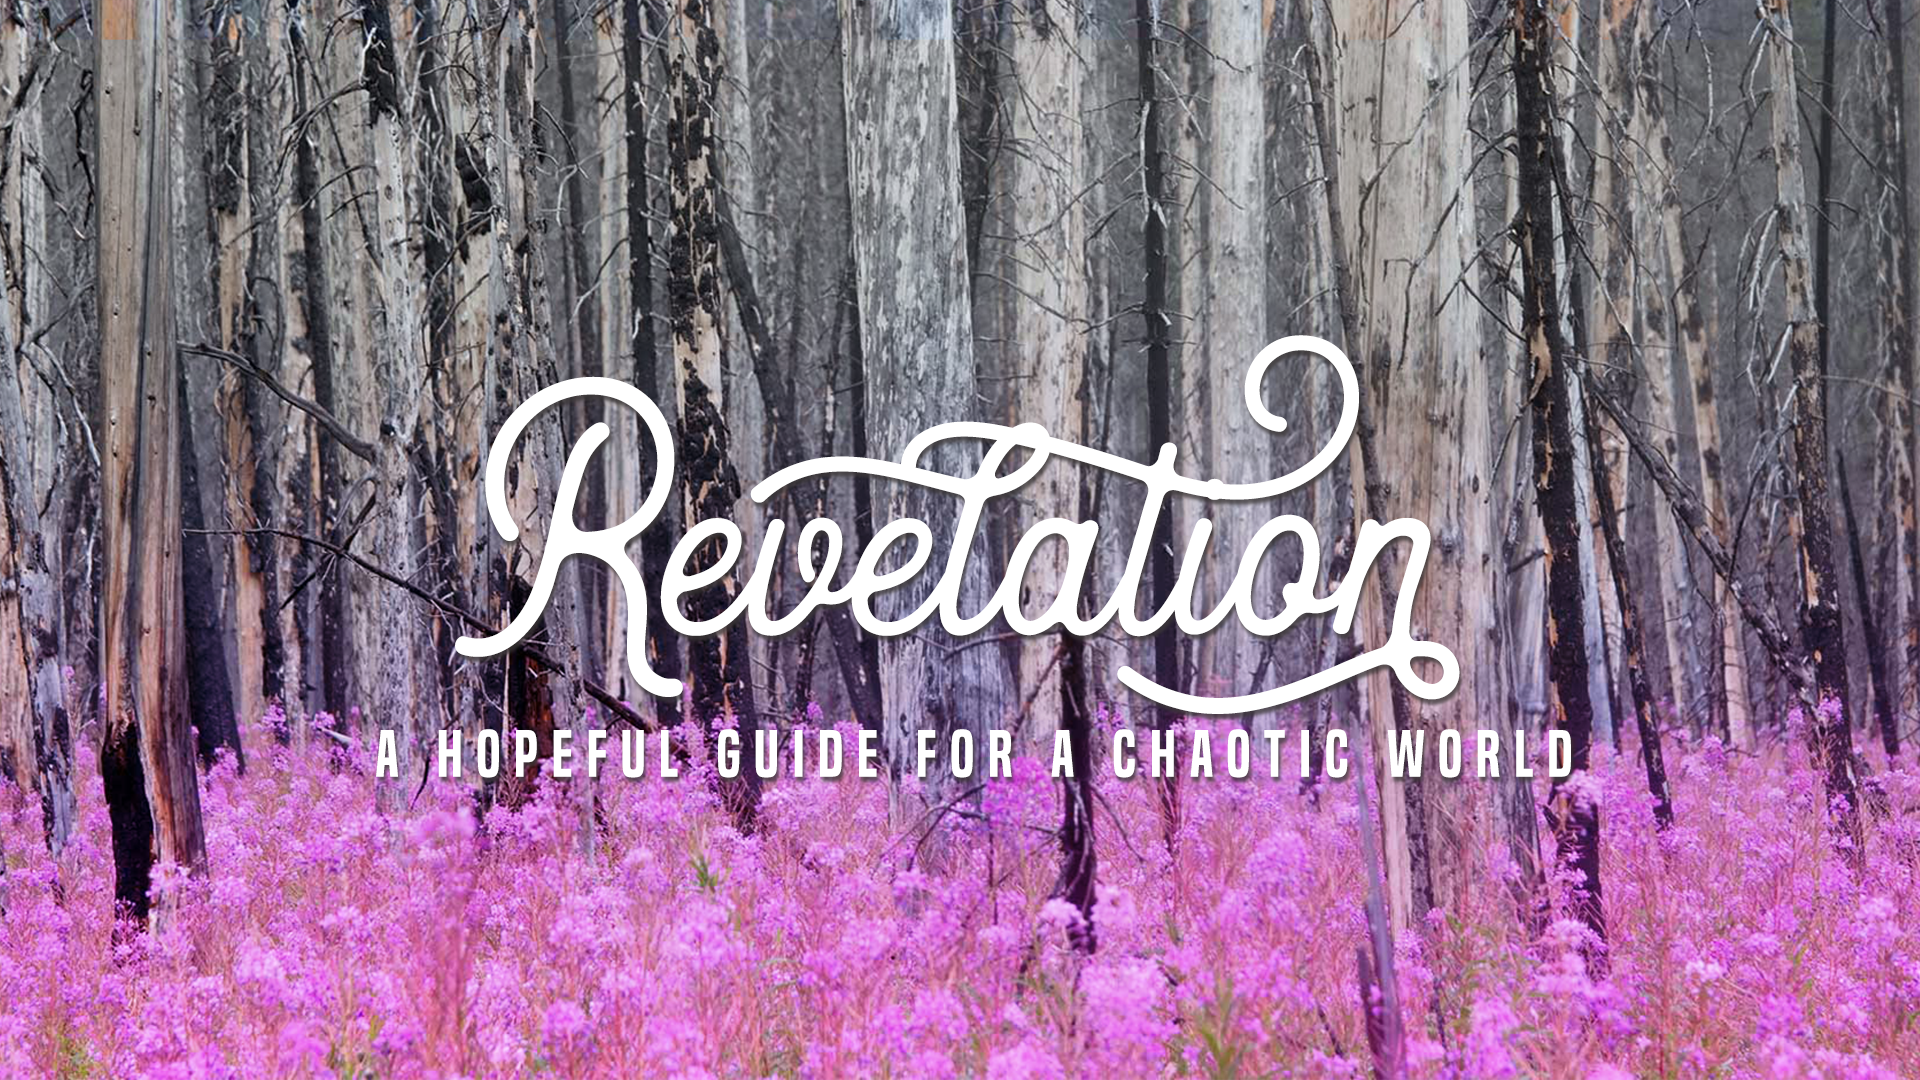 Revelation: A Hopeful Guide for a Chaotic World